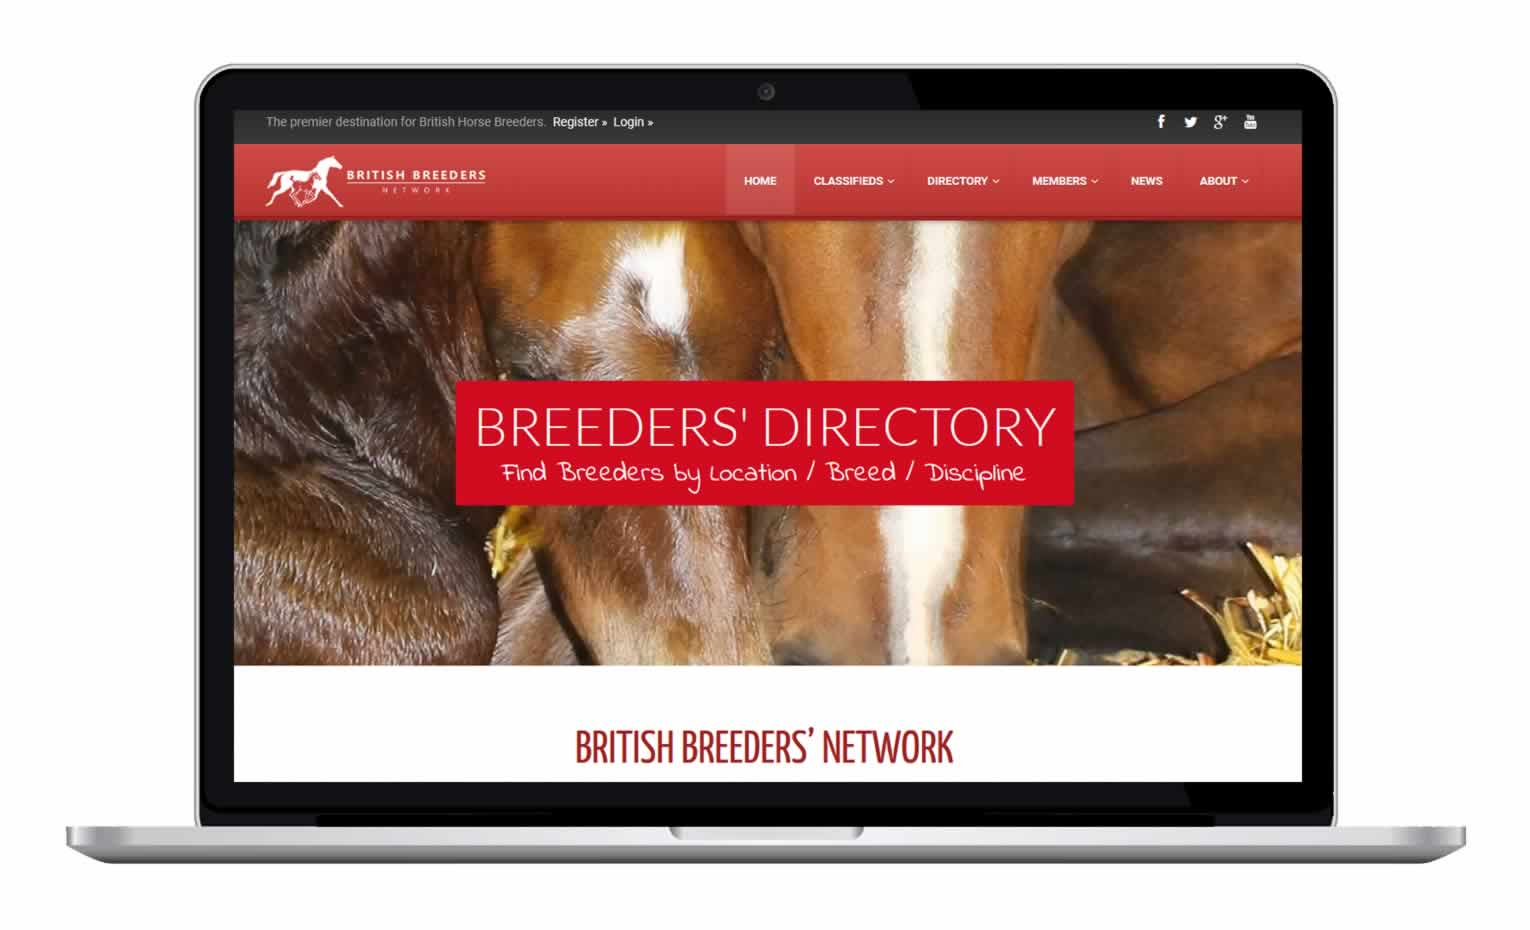 British Breeders Network - Hores Breeders focused on British Bred Horse Breeding